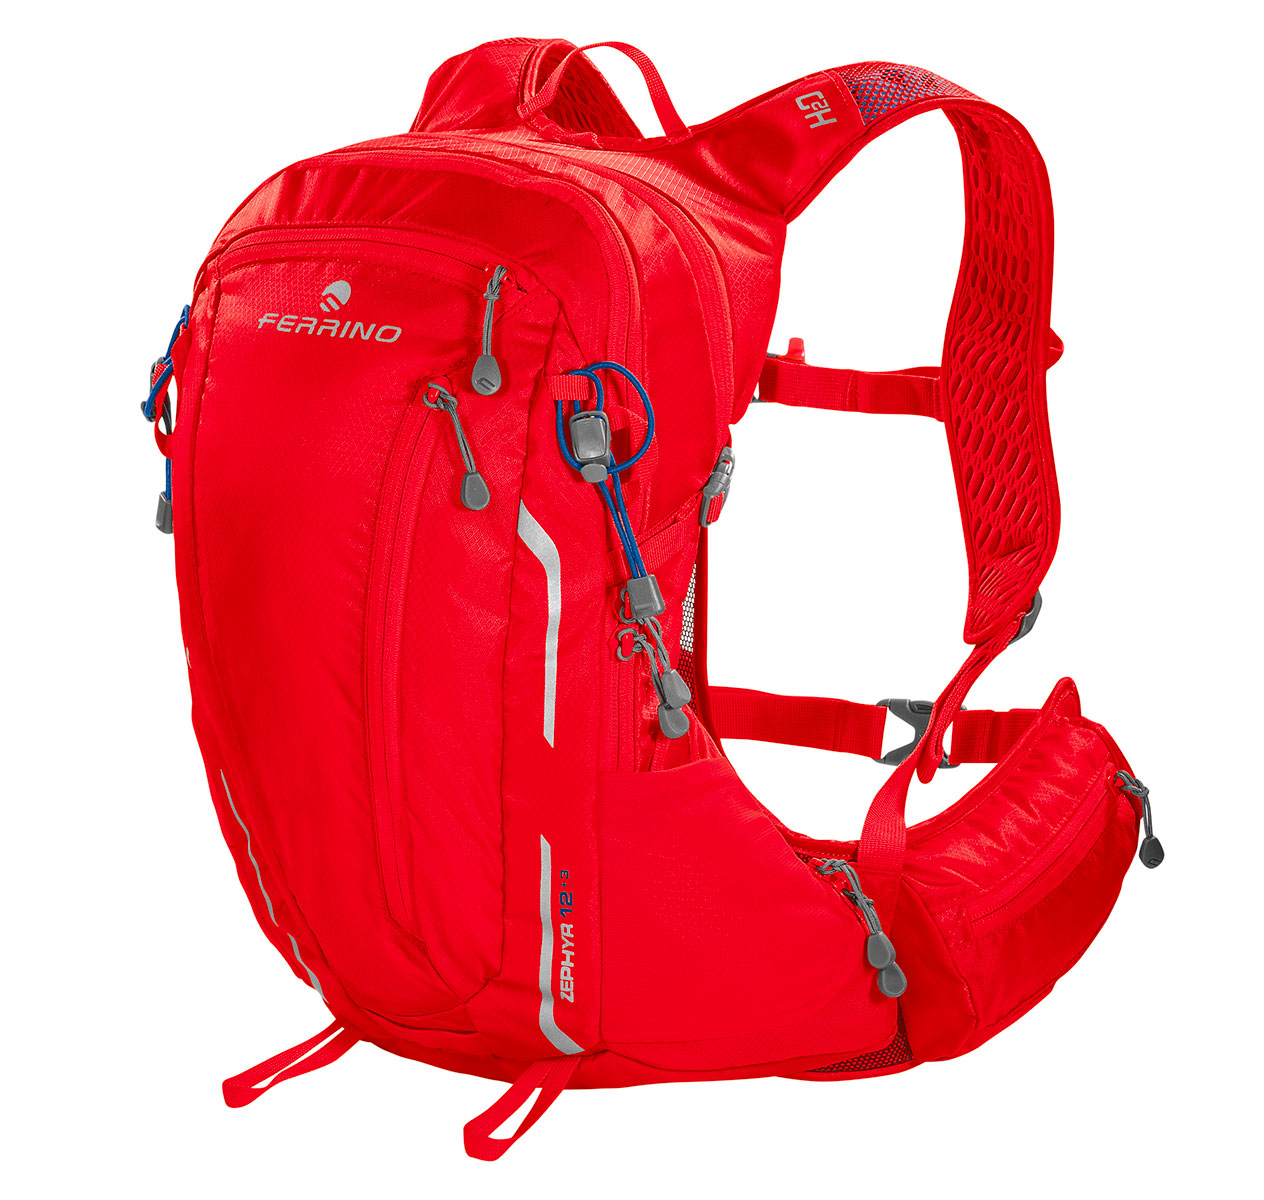 Zephyr running and hiking backpack by Ferrino: a perfect multi-sport rucksack versatile and resistant, with numerous pockets and compartments